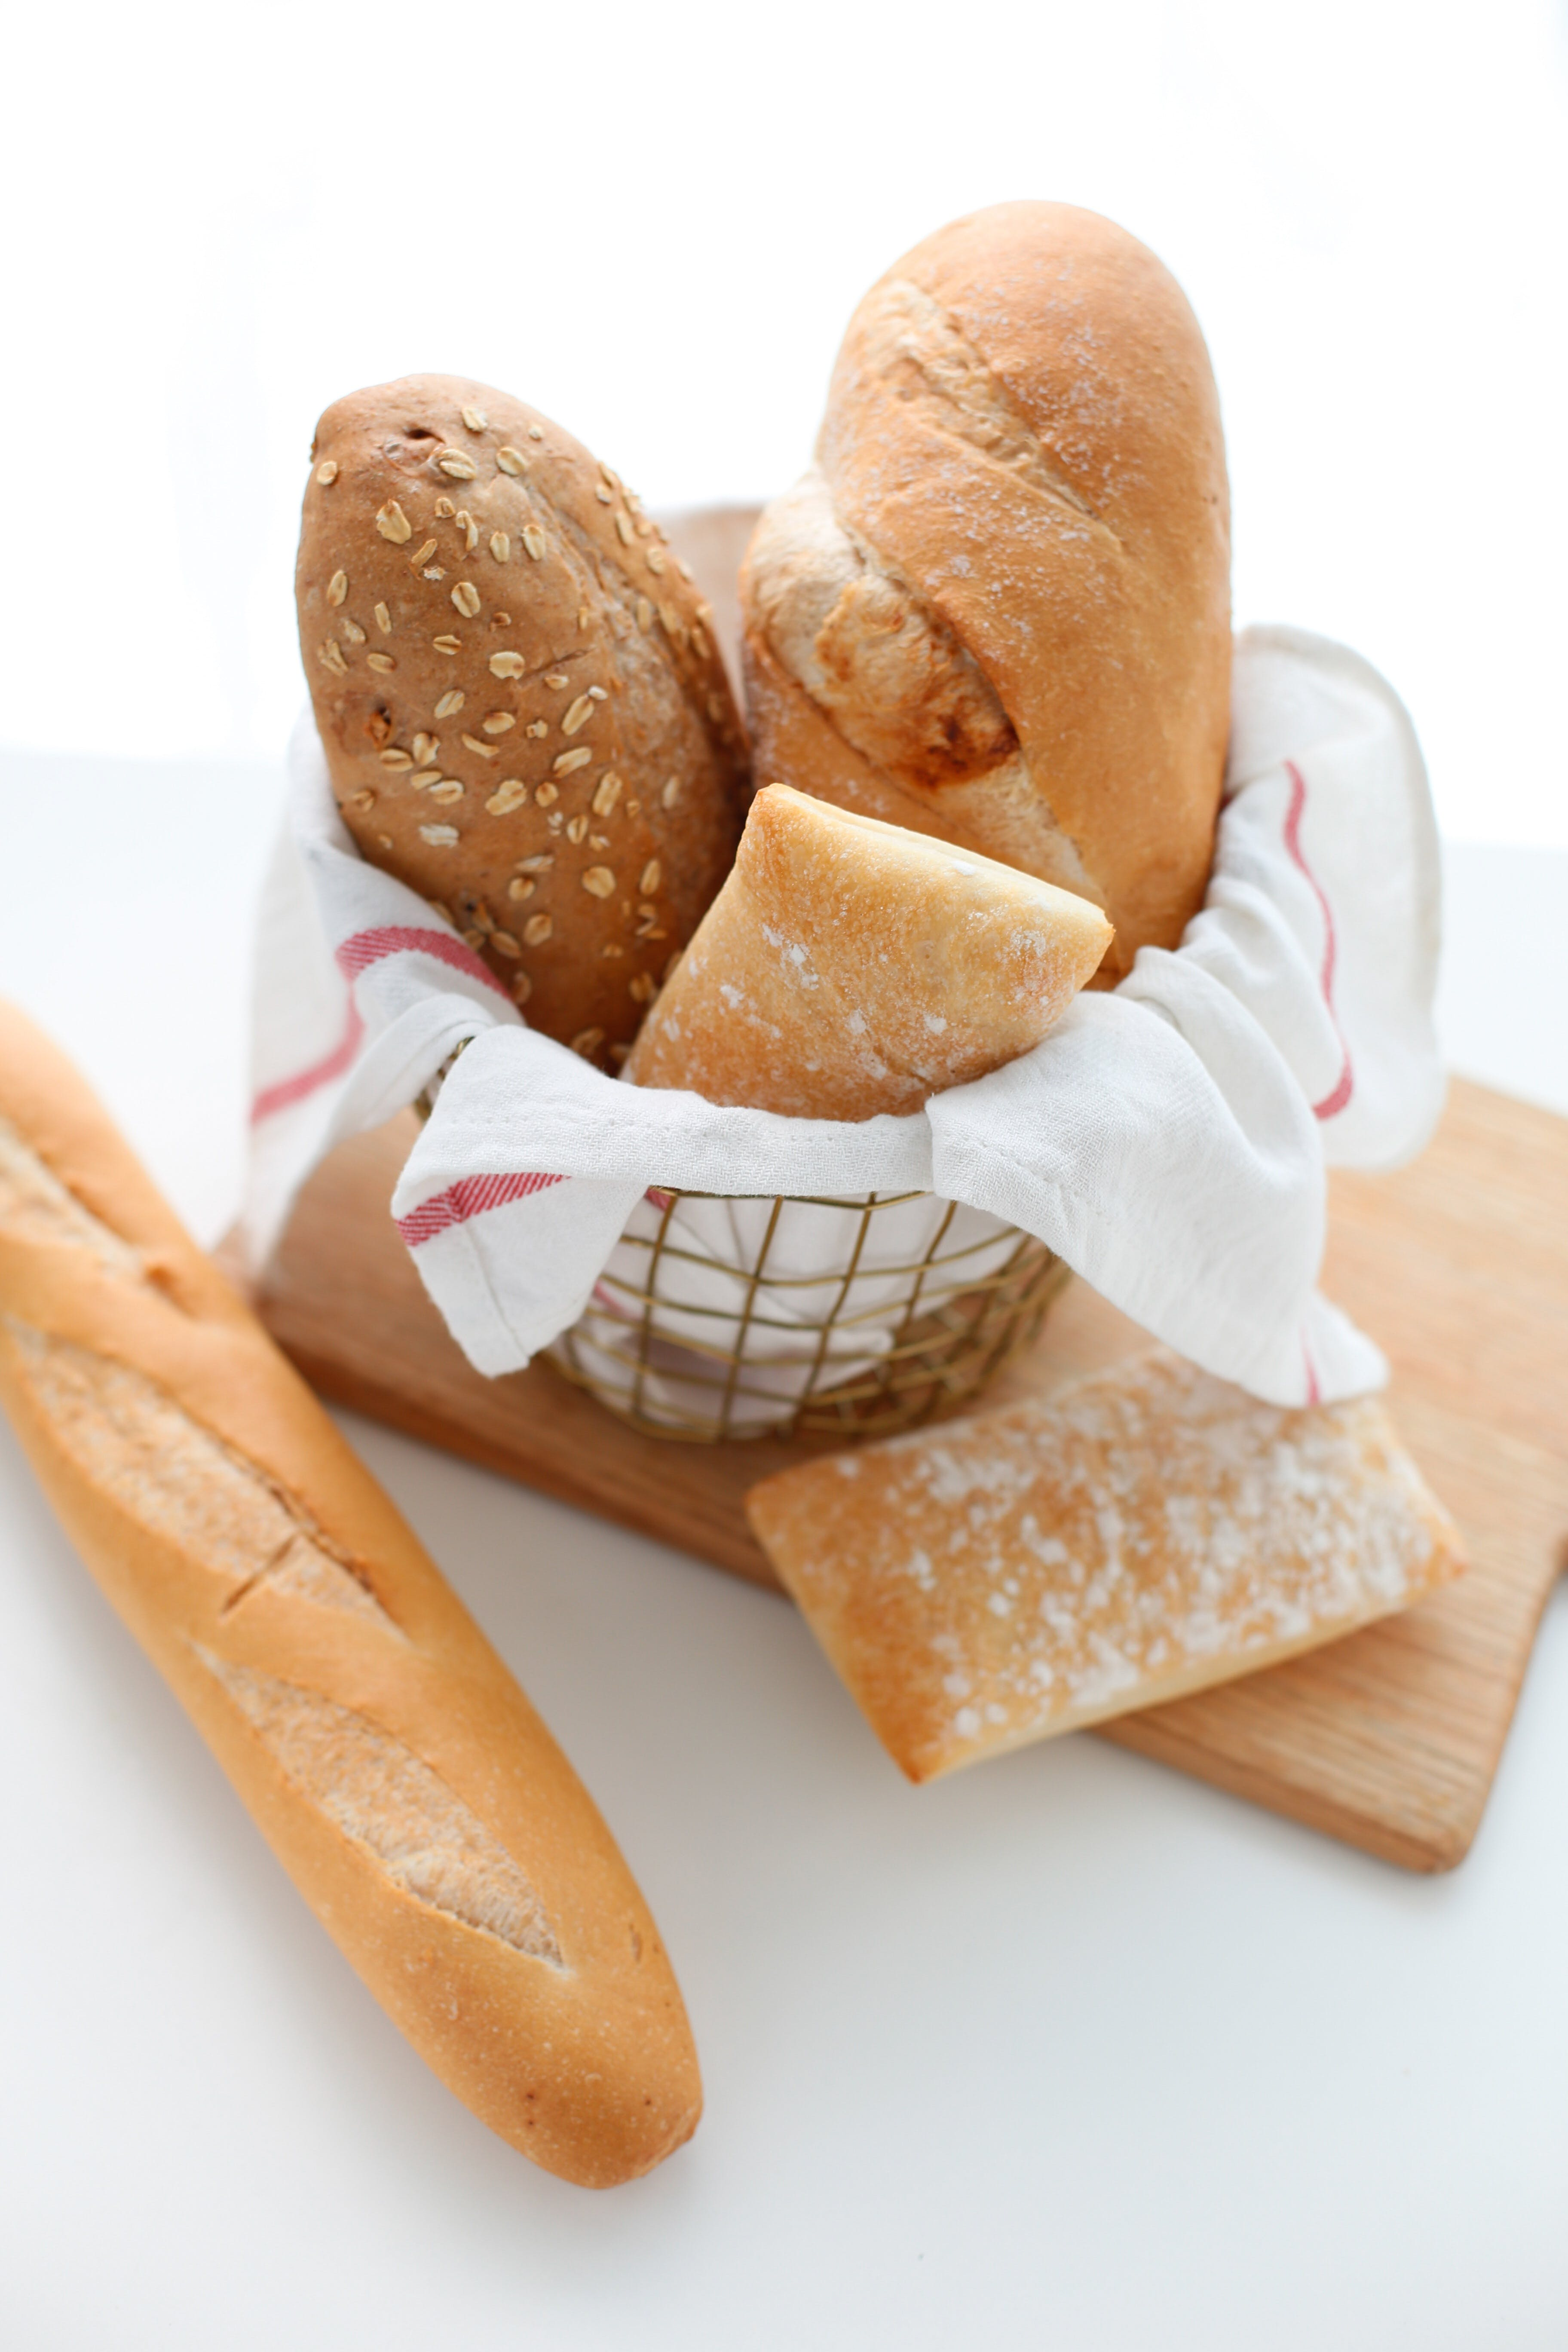 Free stock photo of bread, health, gourmet, baguettes